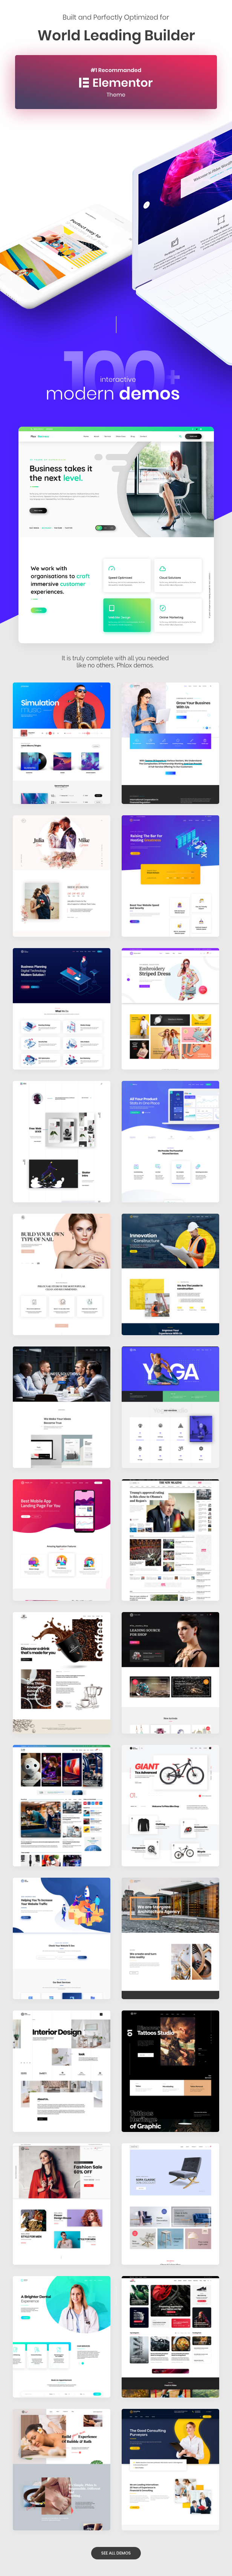 Phlox Pro - Elementor MultiPurpose WordPress Theme - 3